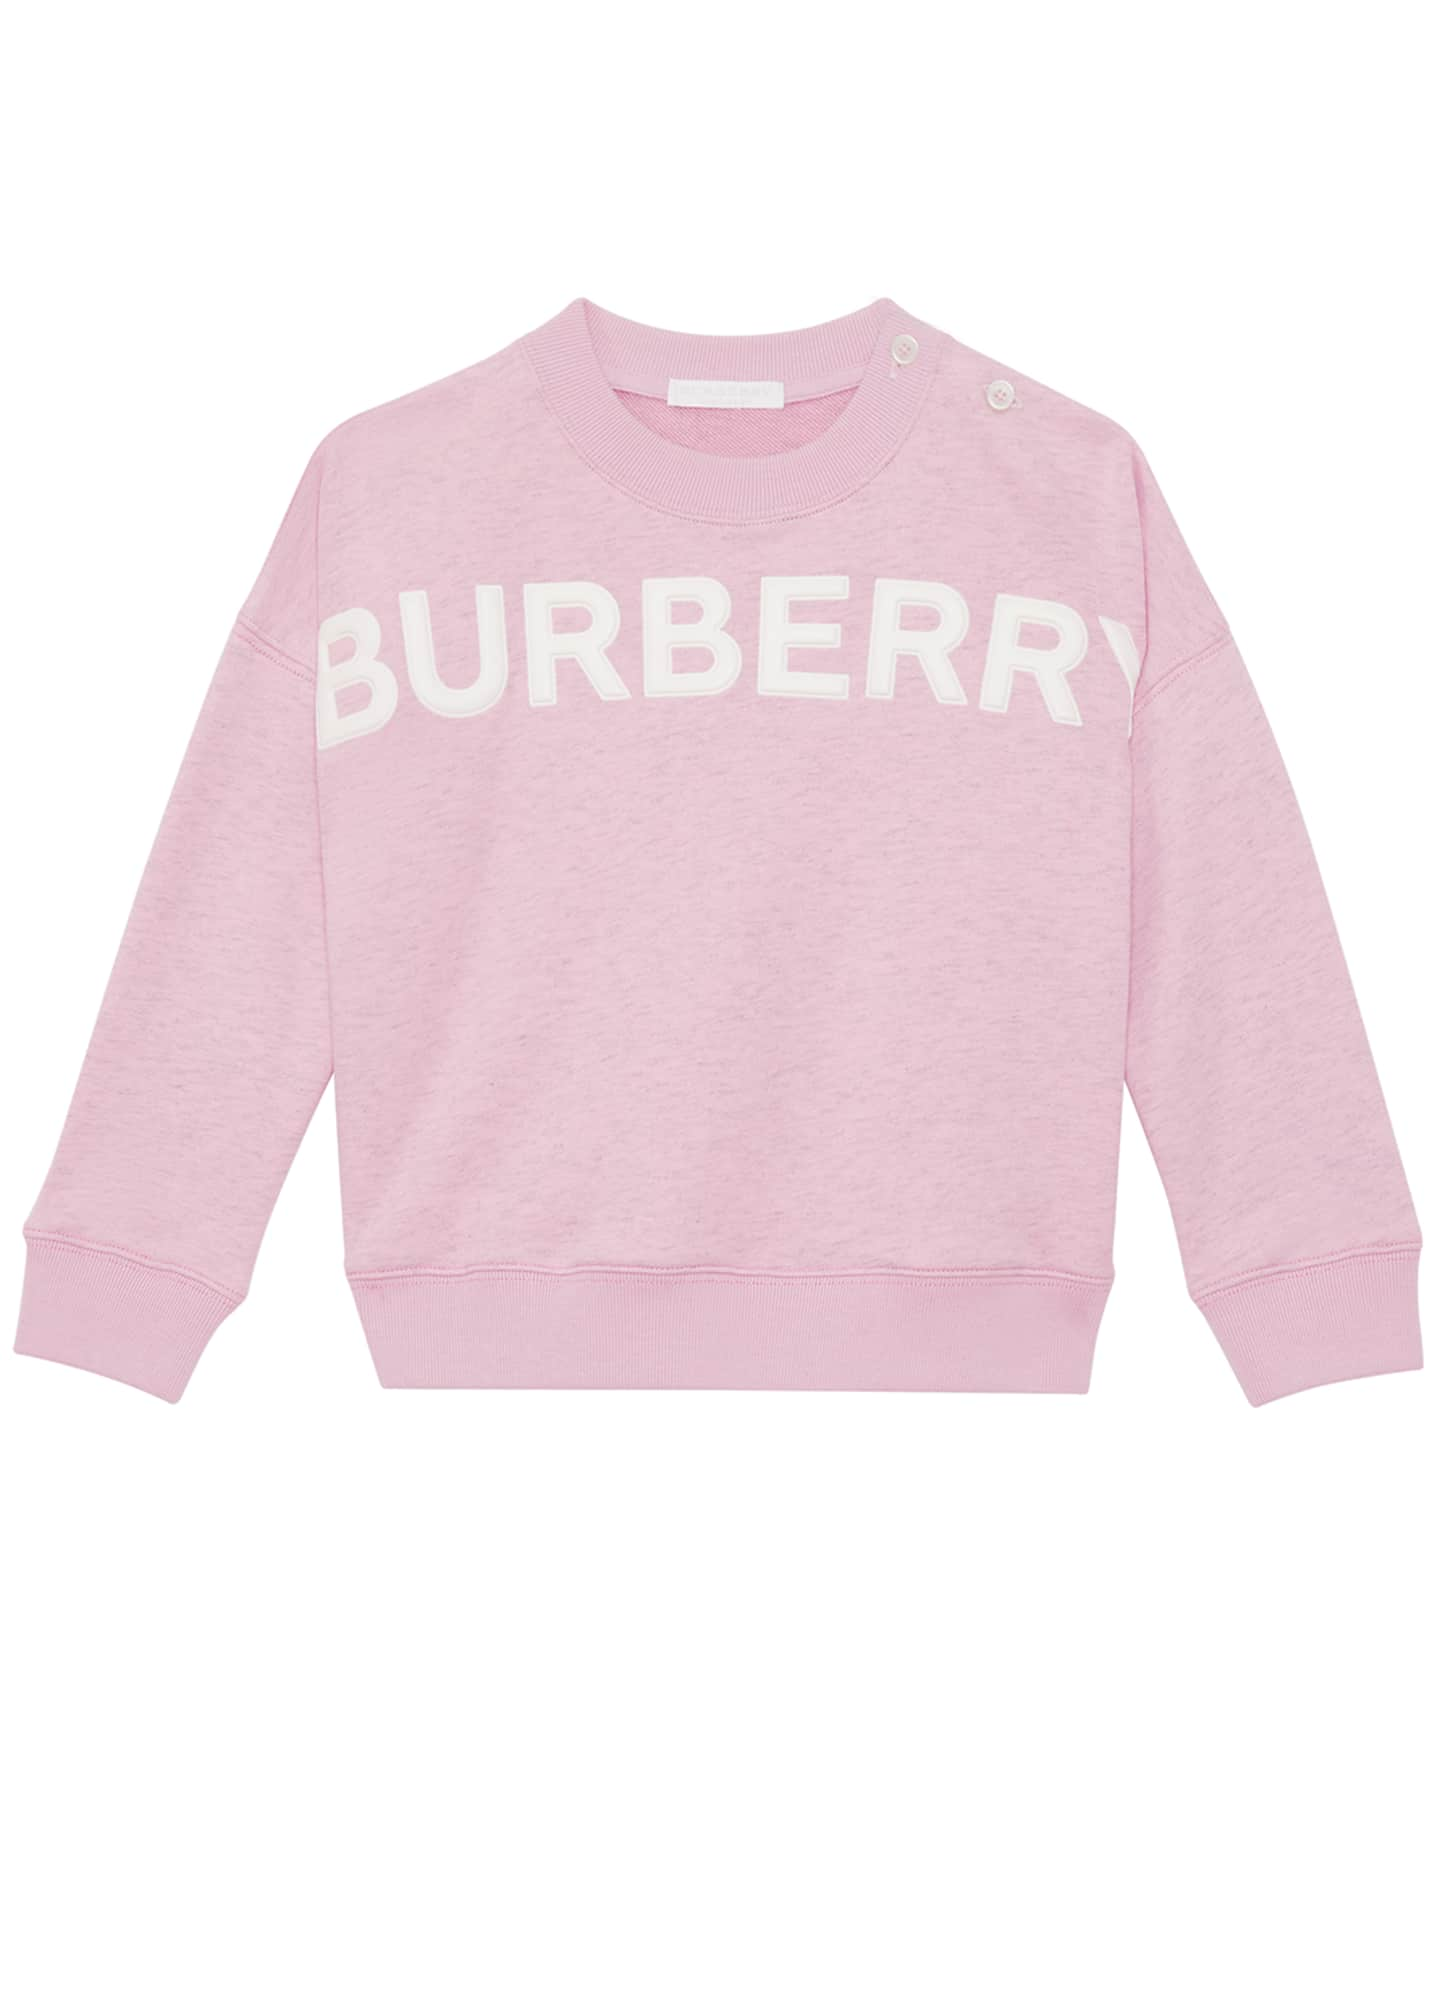 Burberry Mindy Embossed Logo Sweatshirt, Size 6M-2